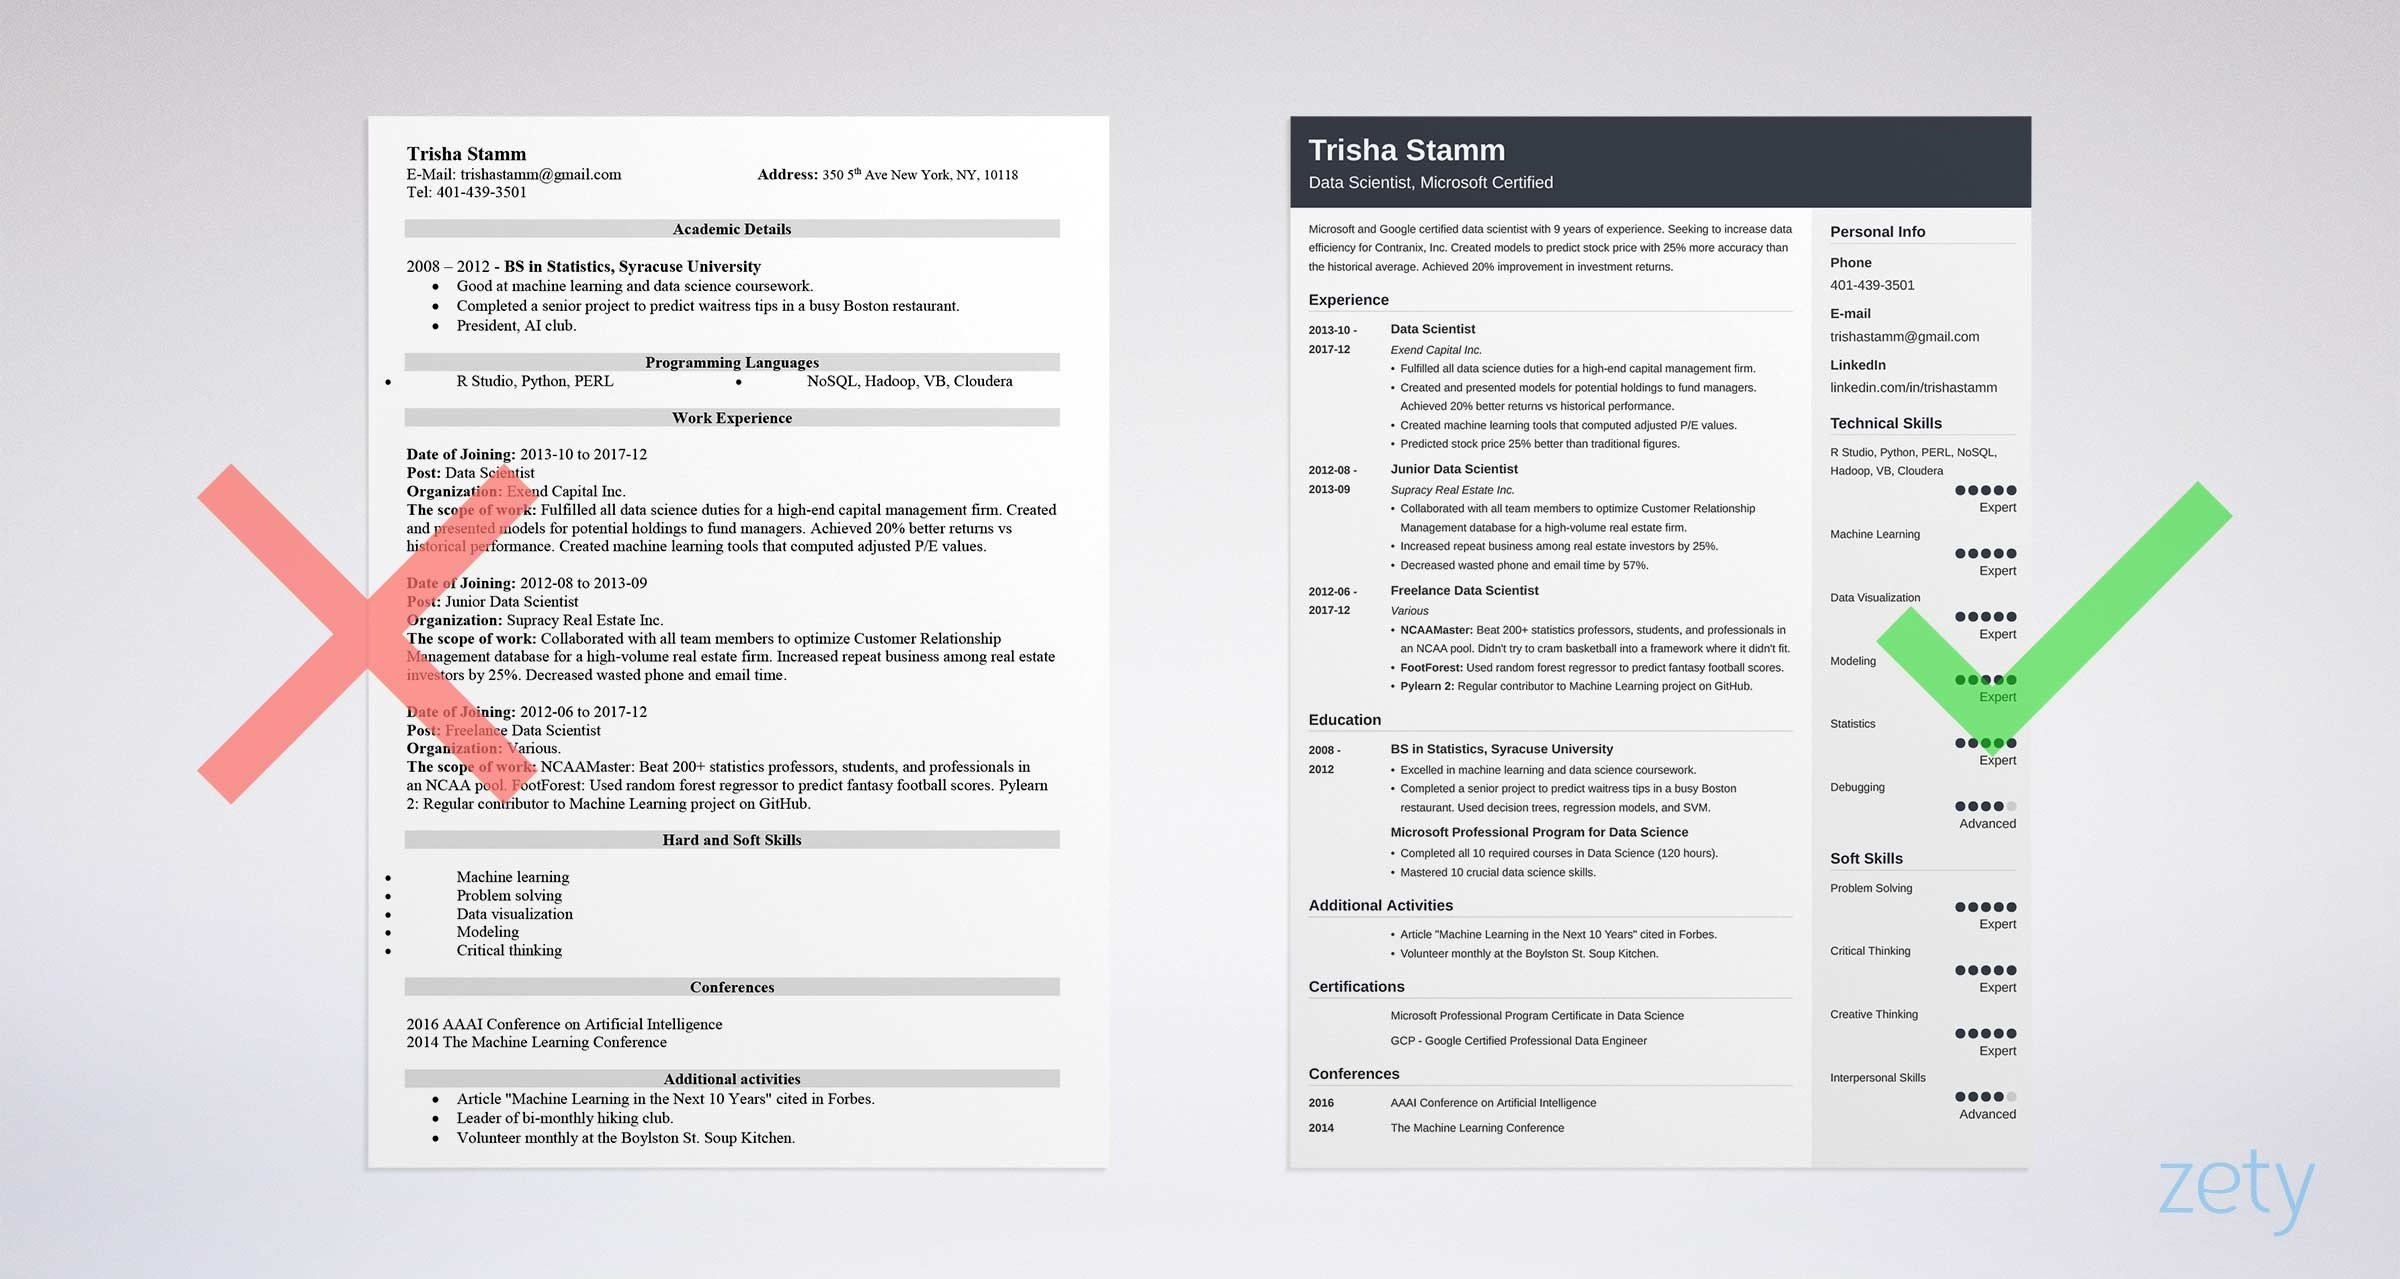 data scientist resume sample template driven guide human services examples upgrade free Resume Resume Data Scientist Template